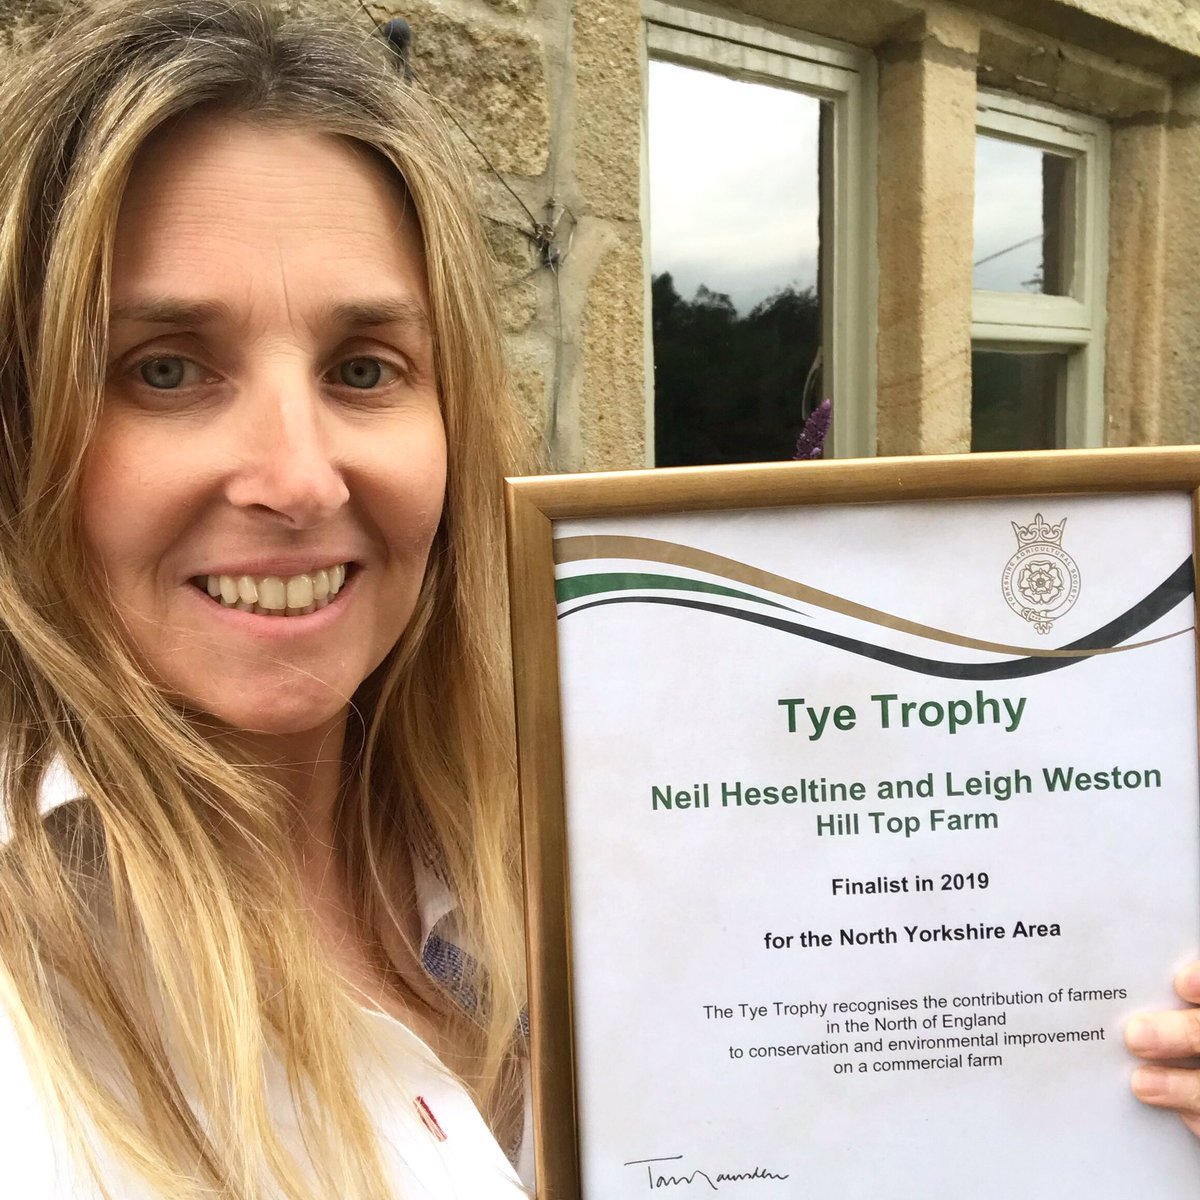 Delighted to have been finalists in the Tye Trophy awards at today's @greatyorkshow which celebrates farming alongside conservation and the environment. Great to be involved, thank you for a great day and congratulations to overall winners @JRfromStrickley, richly deserved.